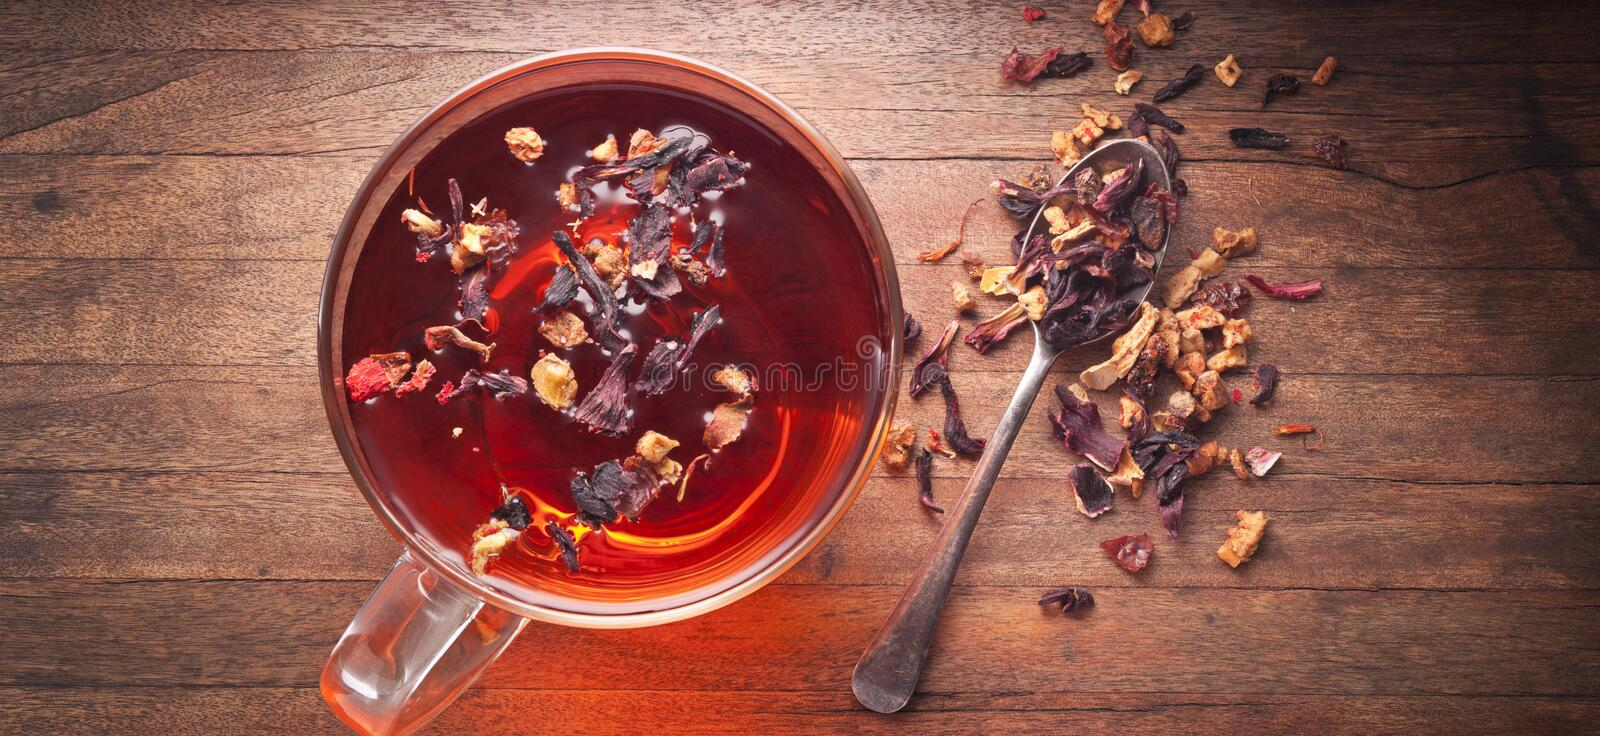 Herbal Tea Cup Background stock photo